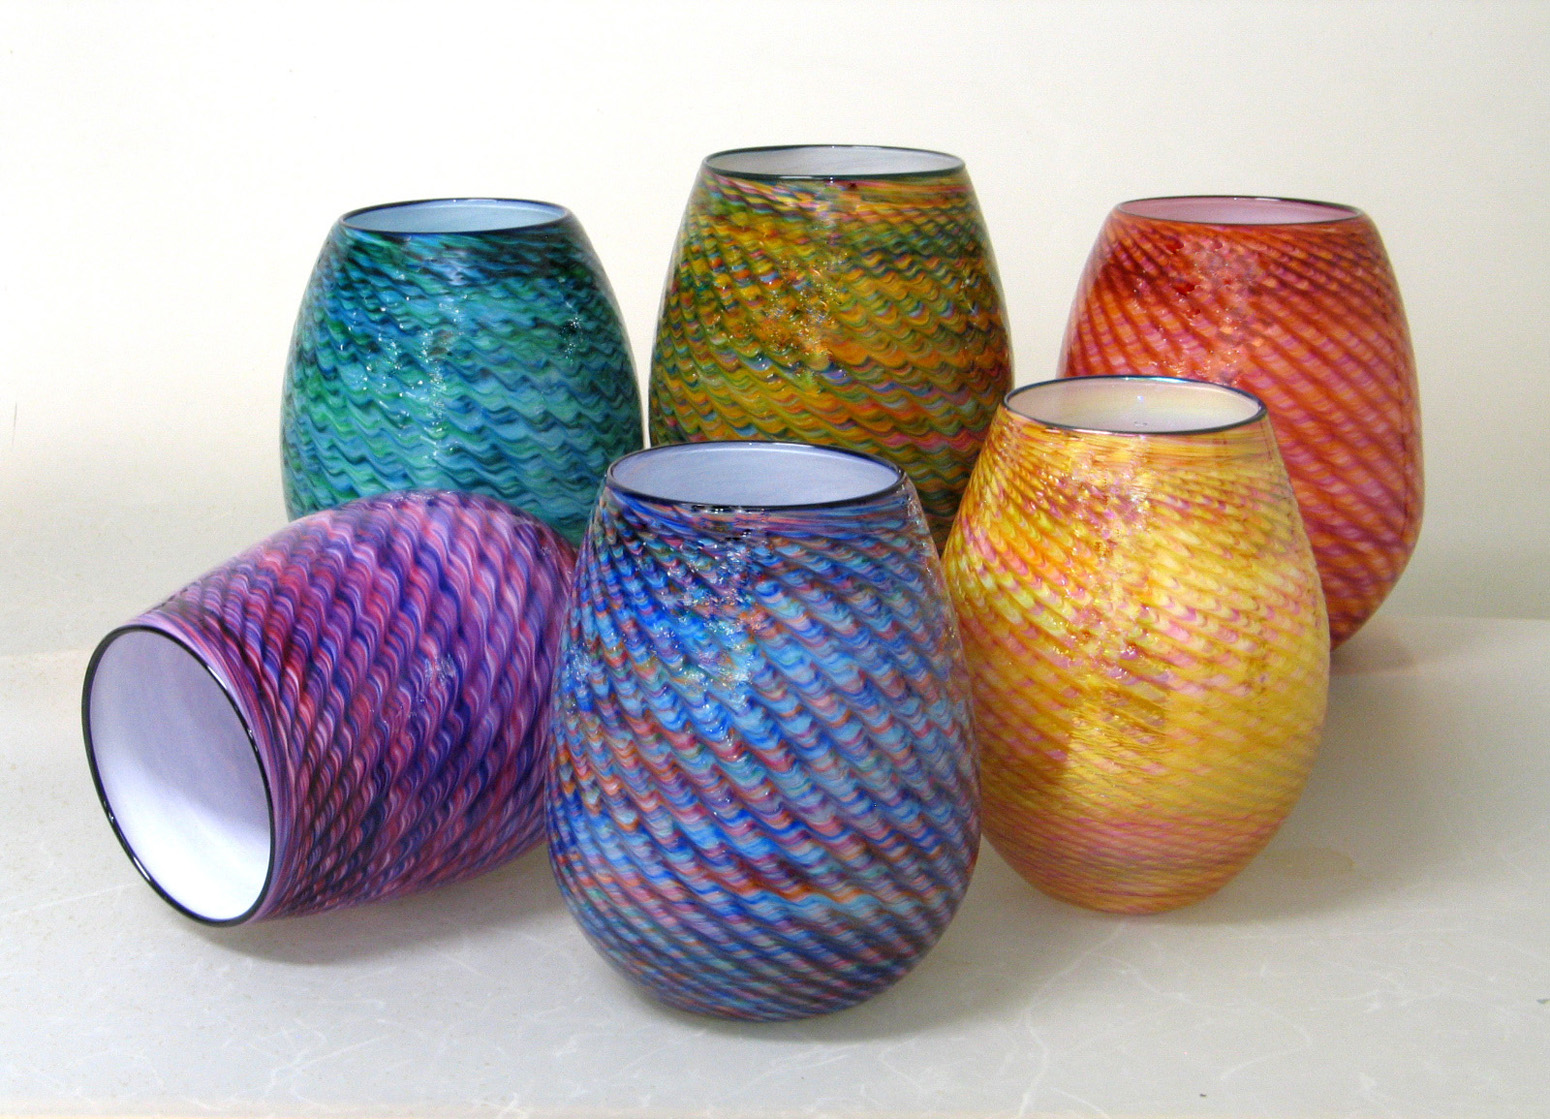 These glass Baskets are 'woven' using our own exclusive color mixes. The colors are spun into multi-chromatic threads and further textured using time honored free-hand techniques. Each basket receives a finishing accent of color in the form of a lip wrap. (10-11in. ht)